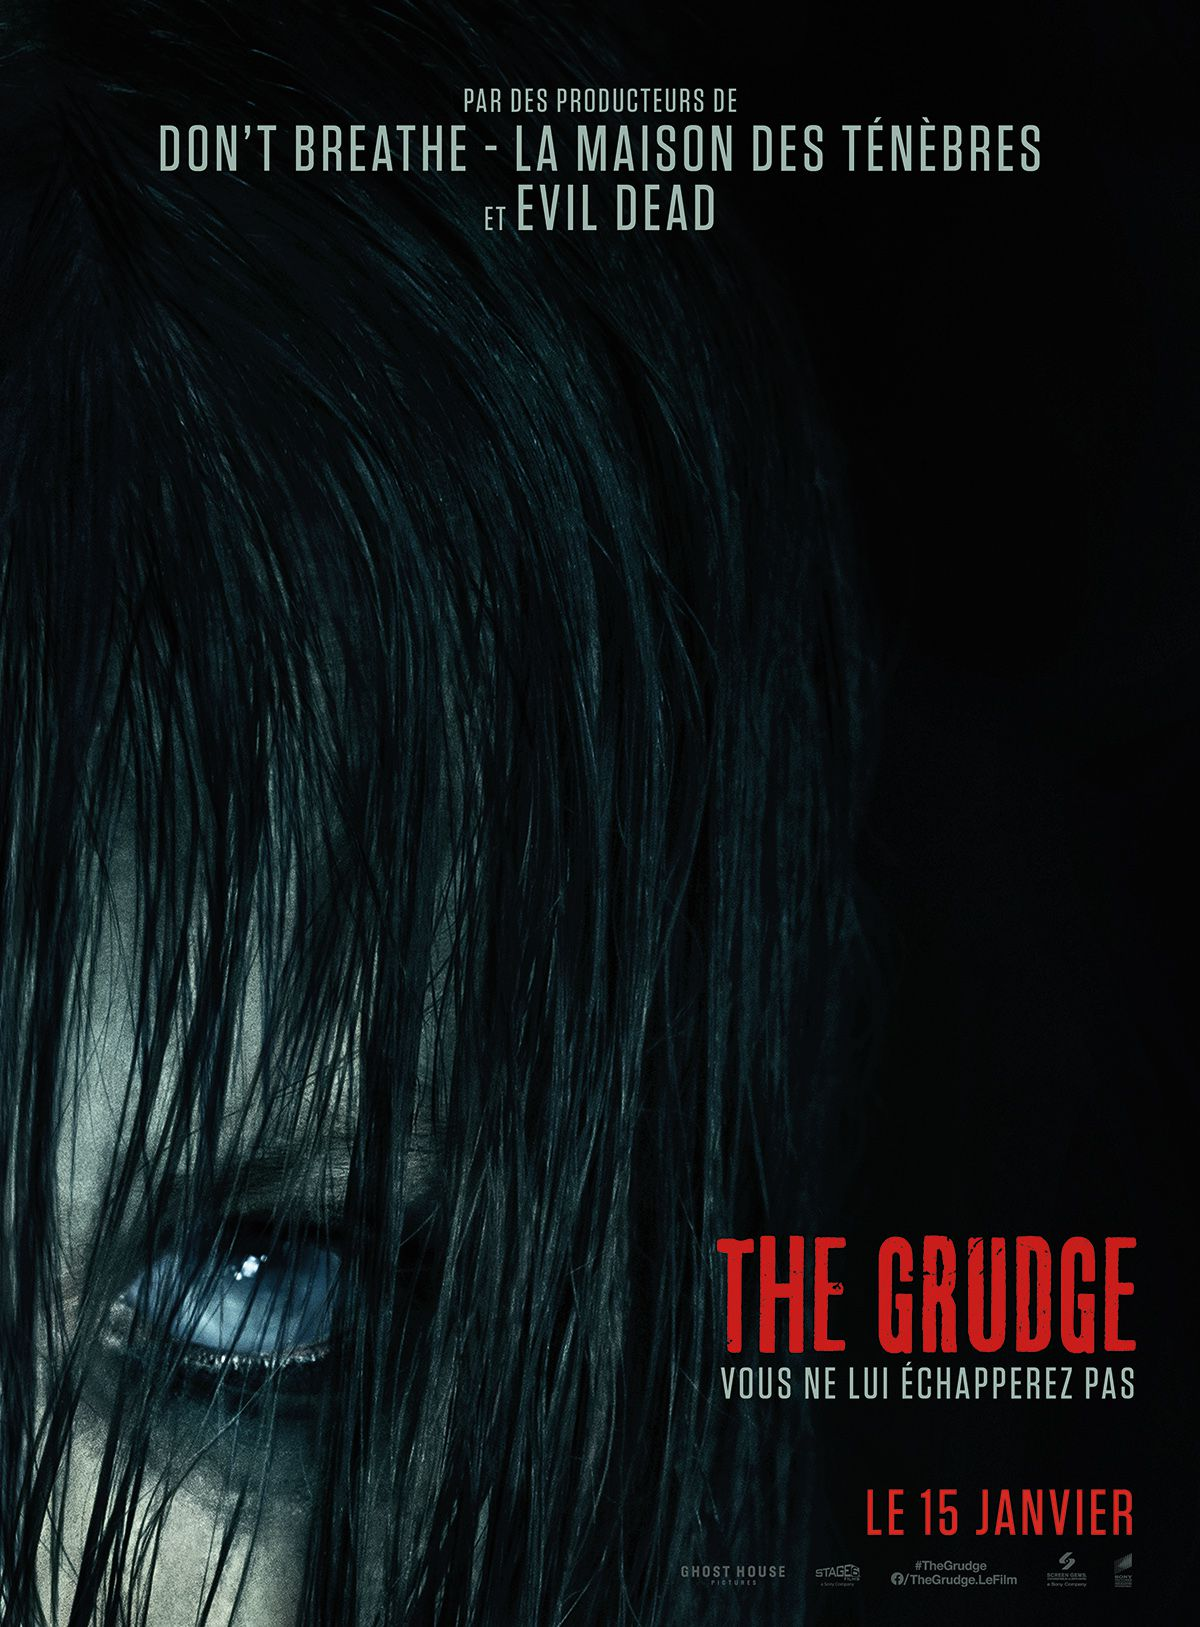 The Grudge - Film (2020) streaming VF gratuit complet